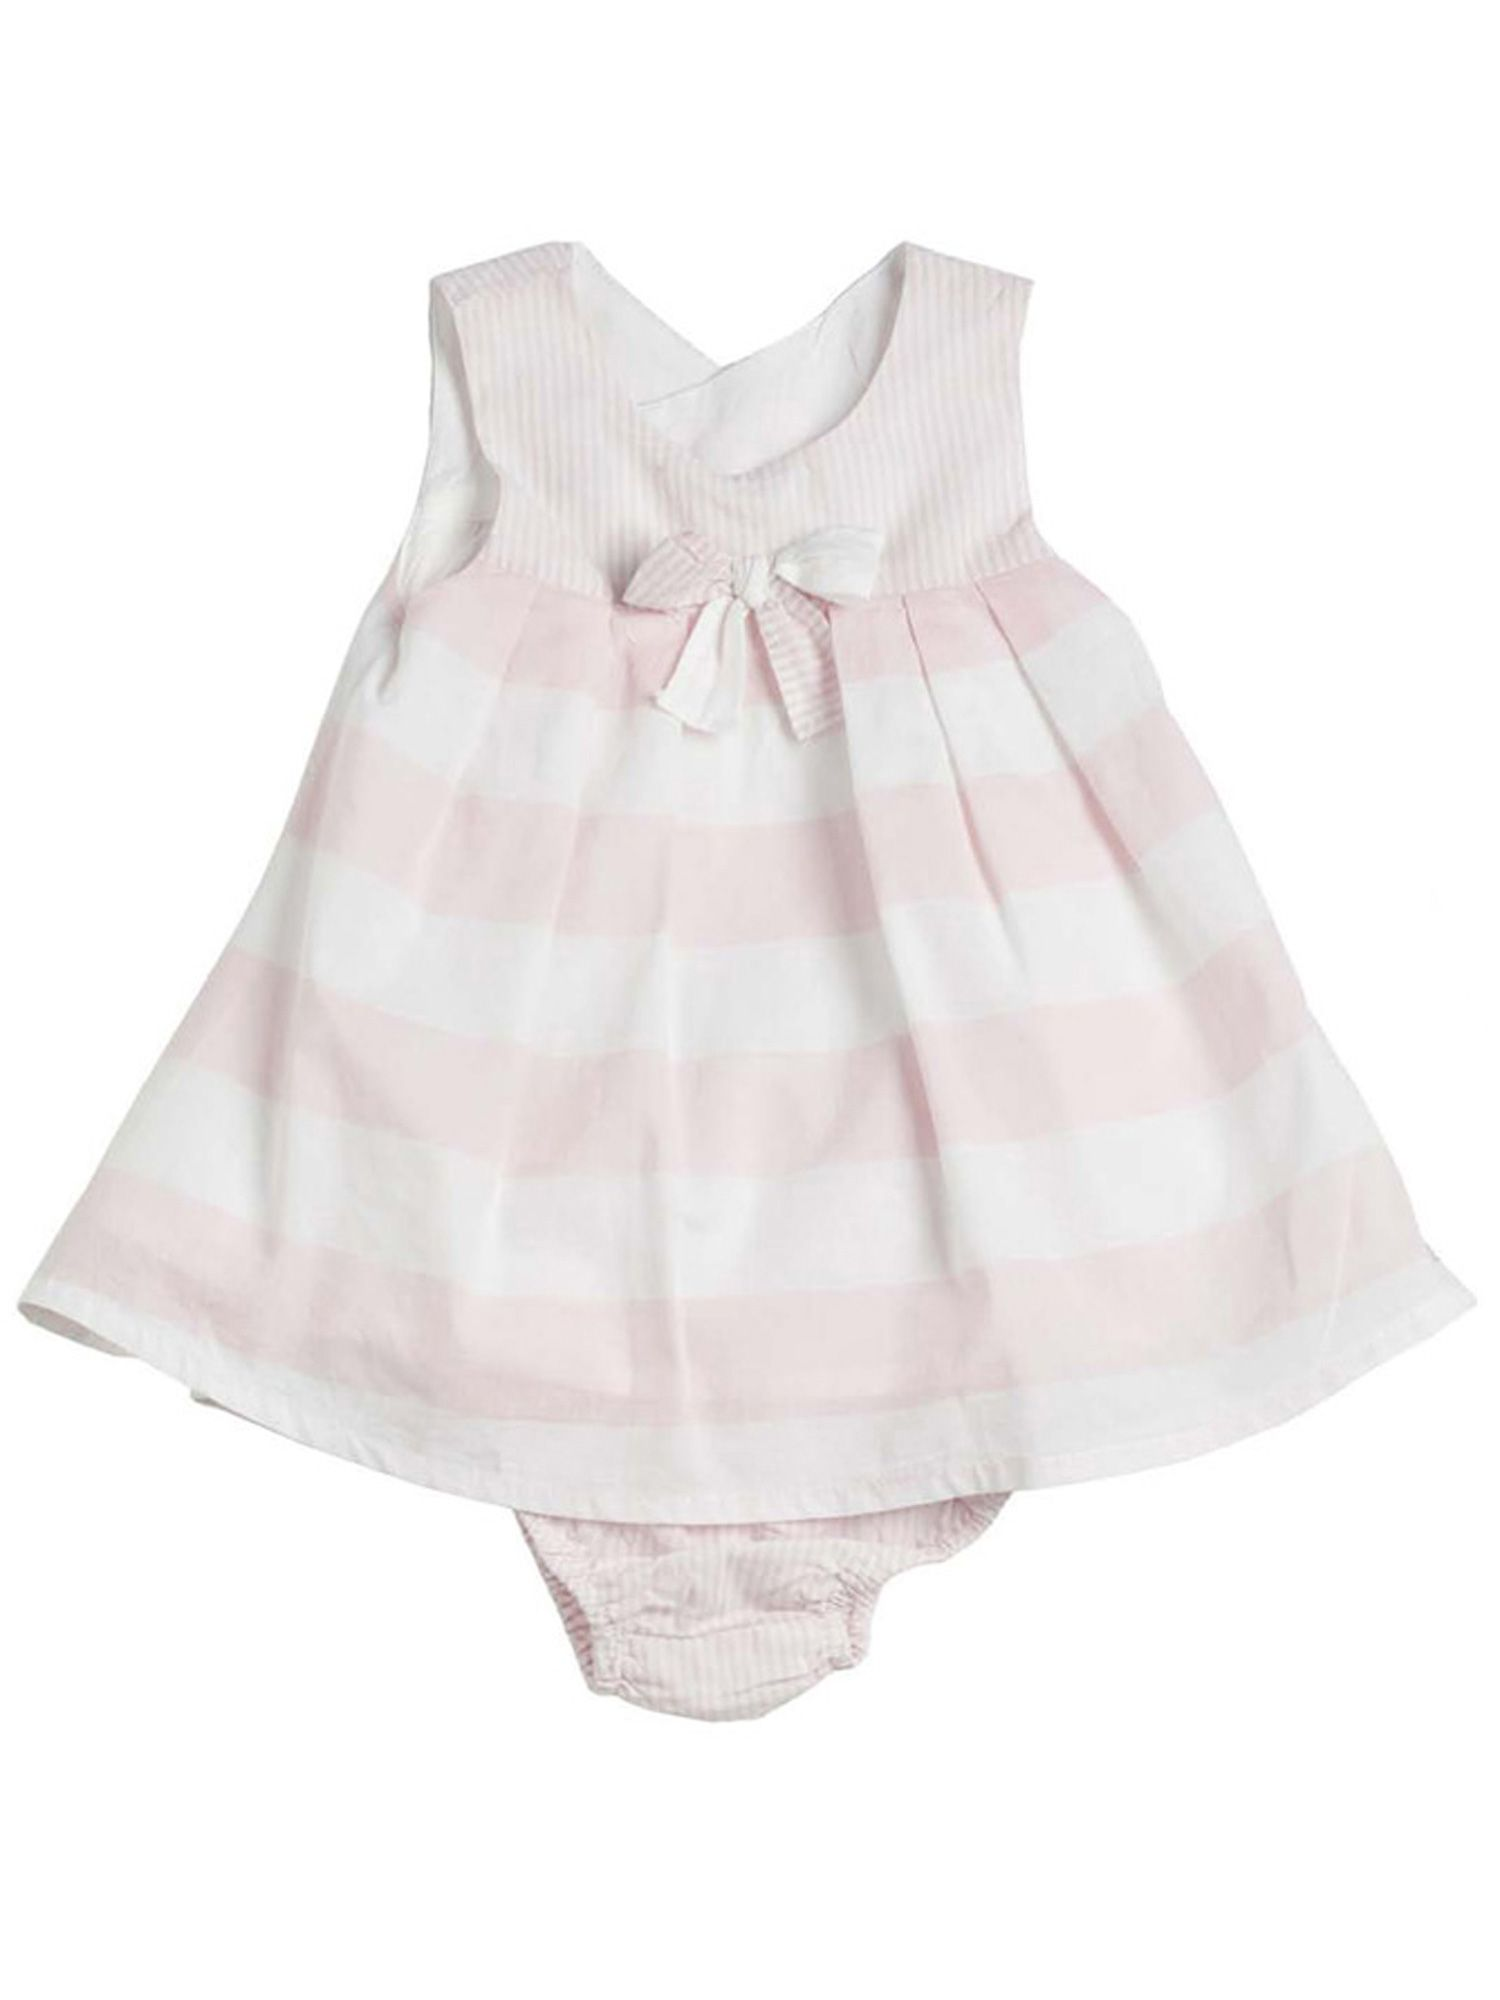 Baby girls pink striped cotton dress with knicker